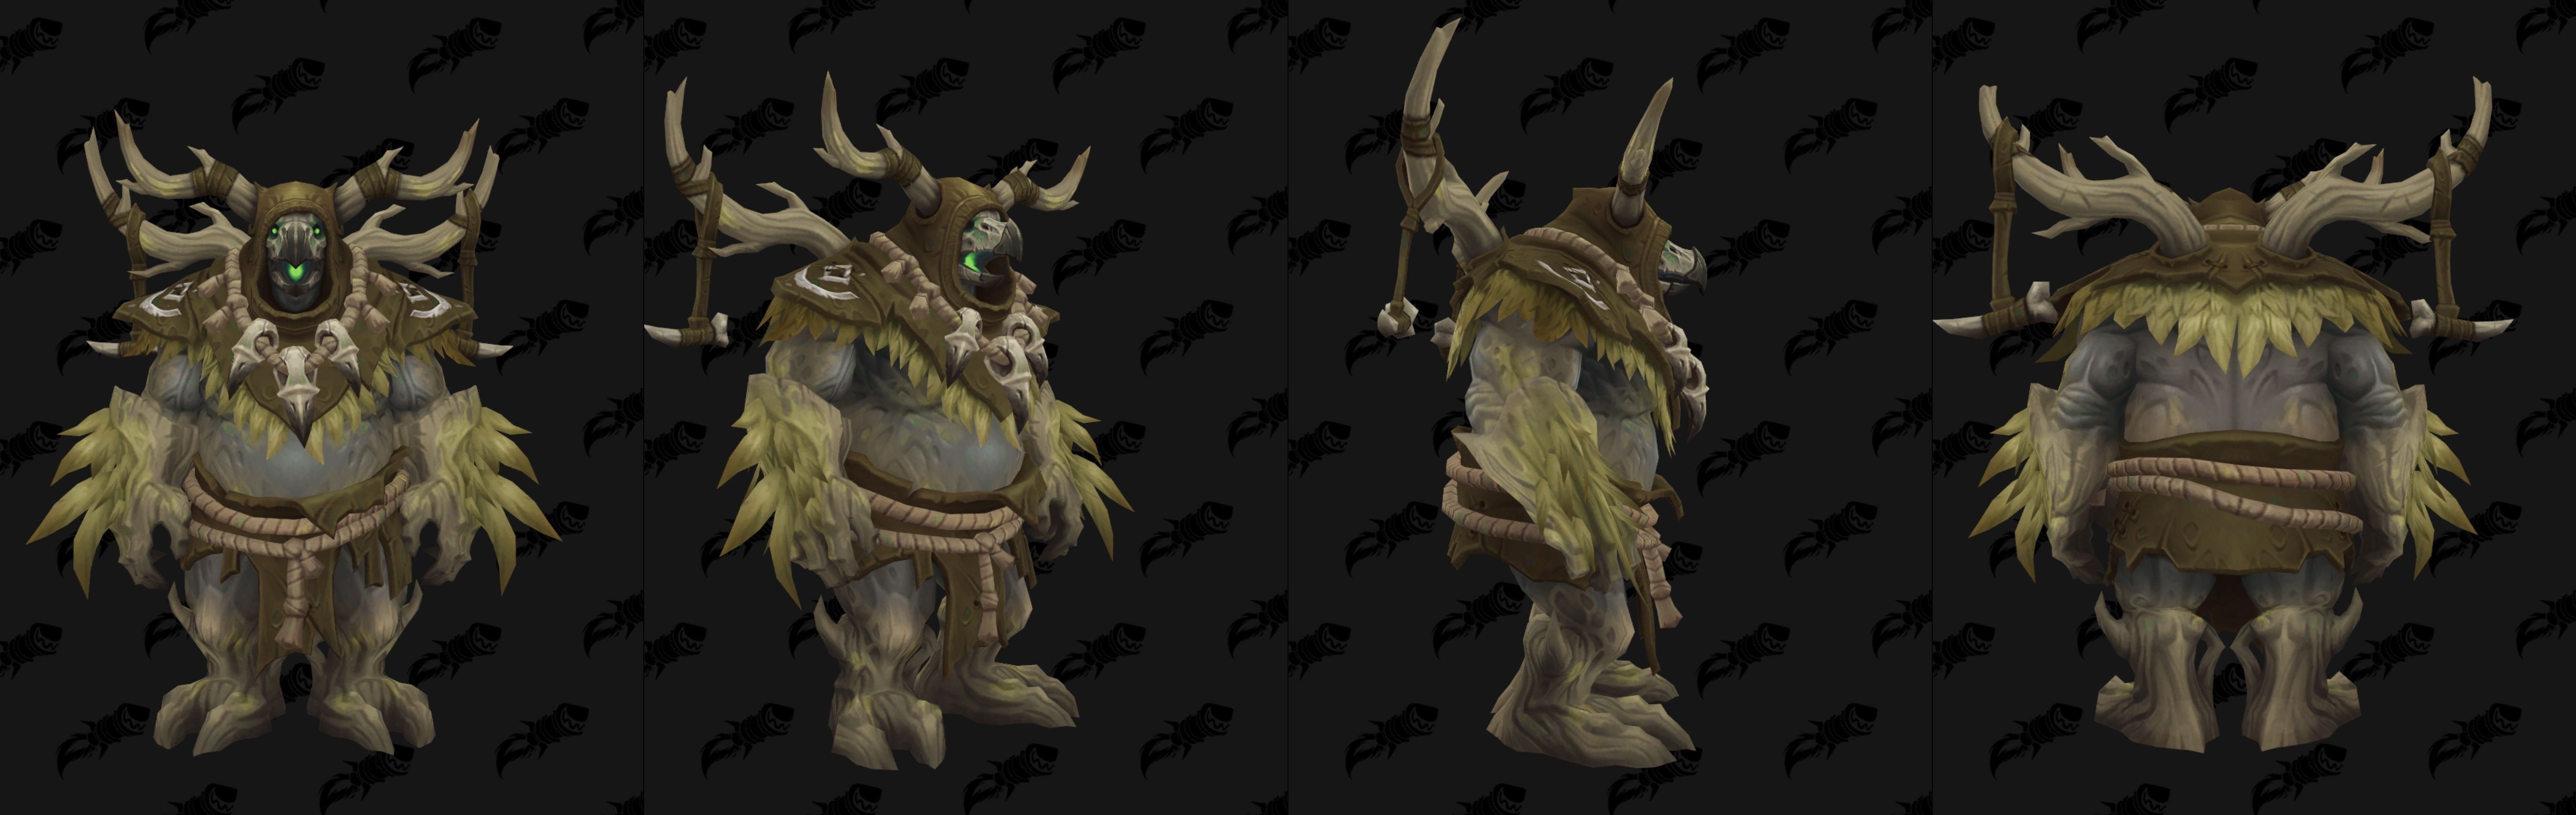 WoW Moonkin Form Kul Tiran